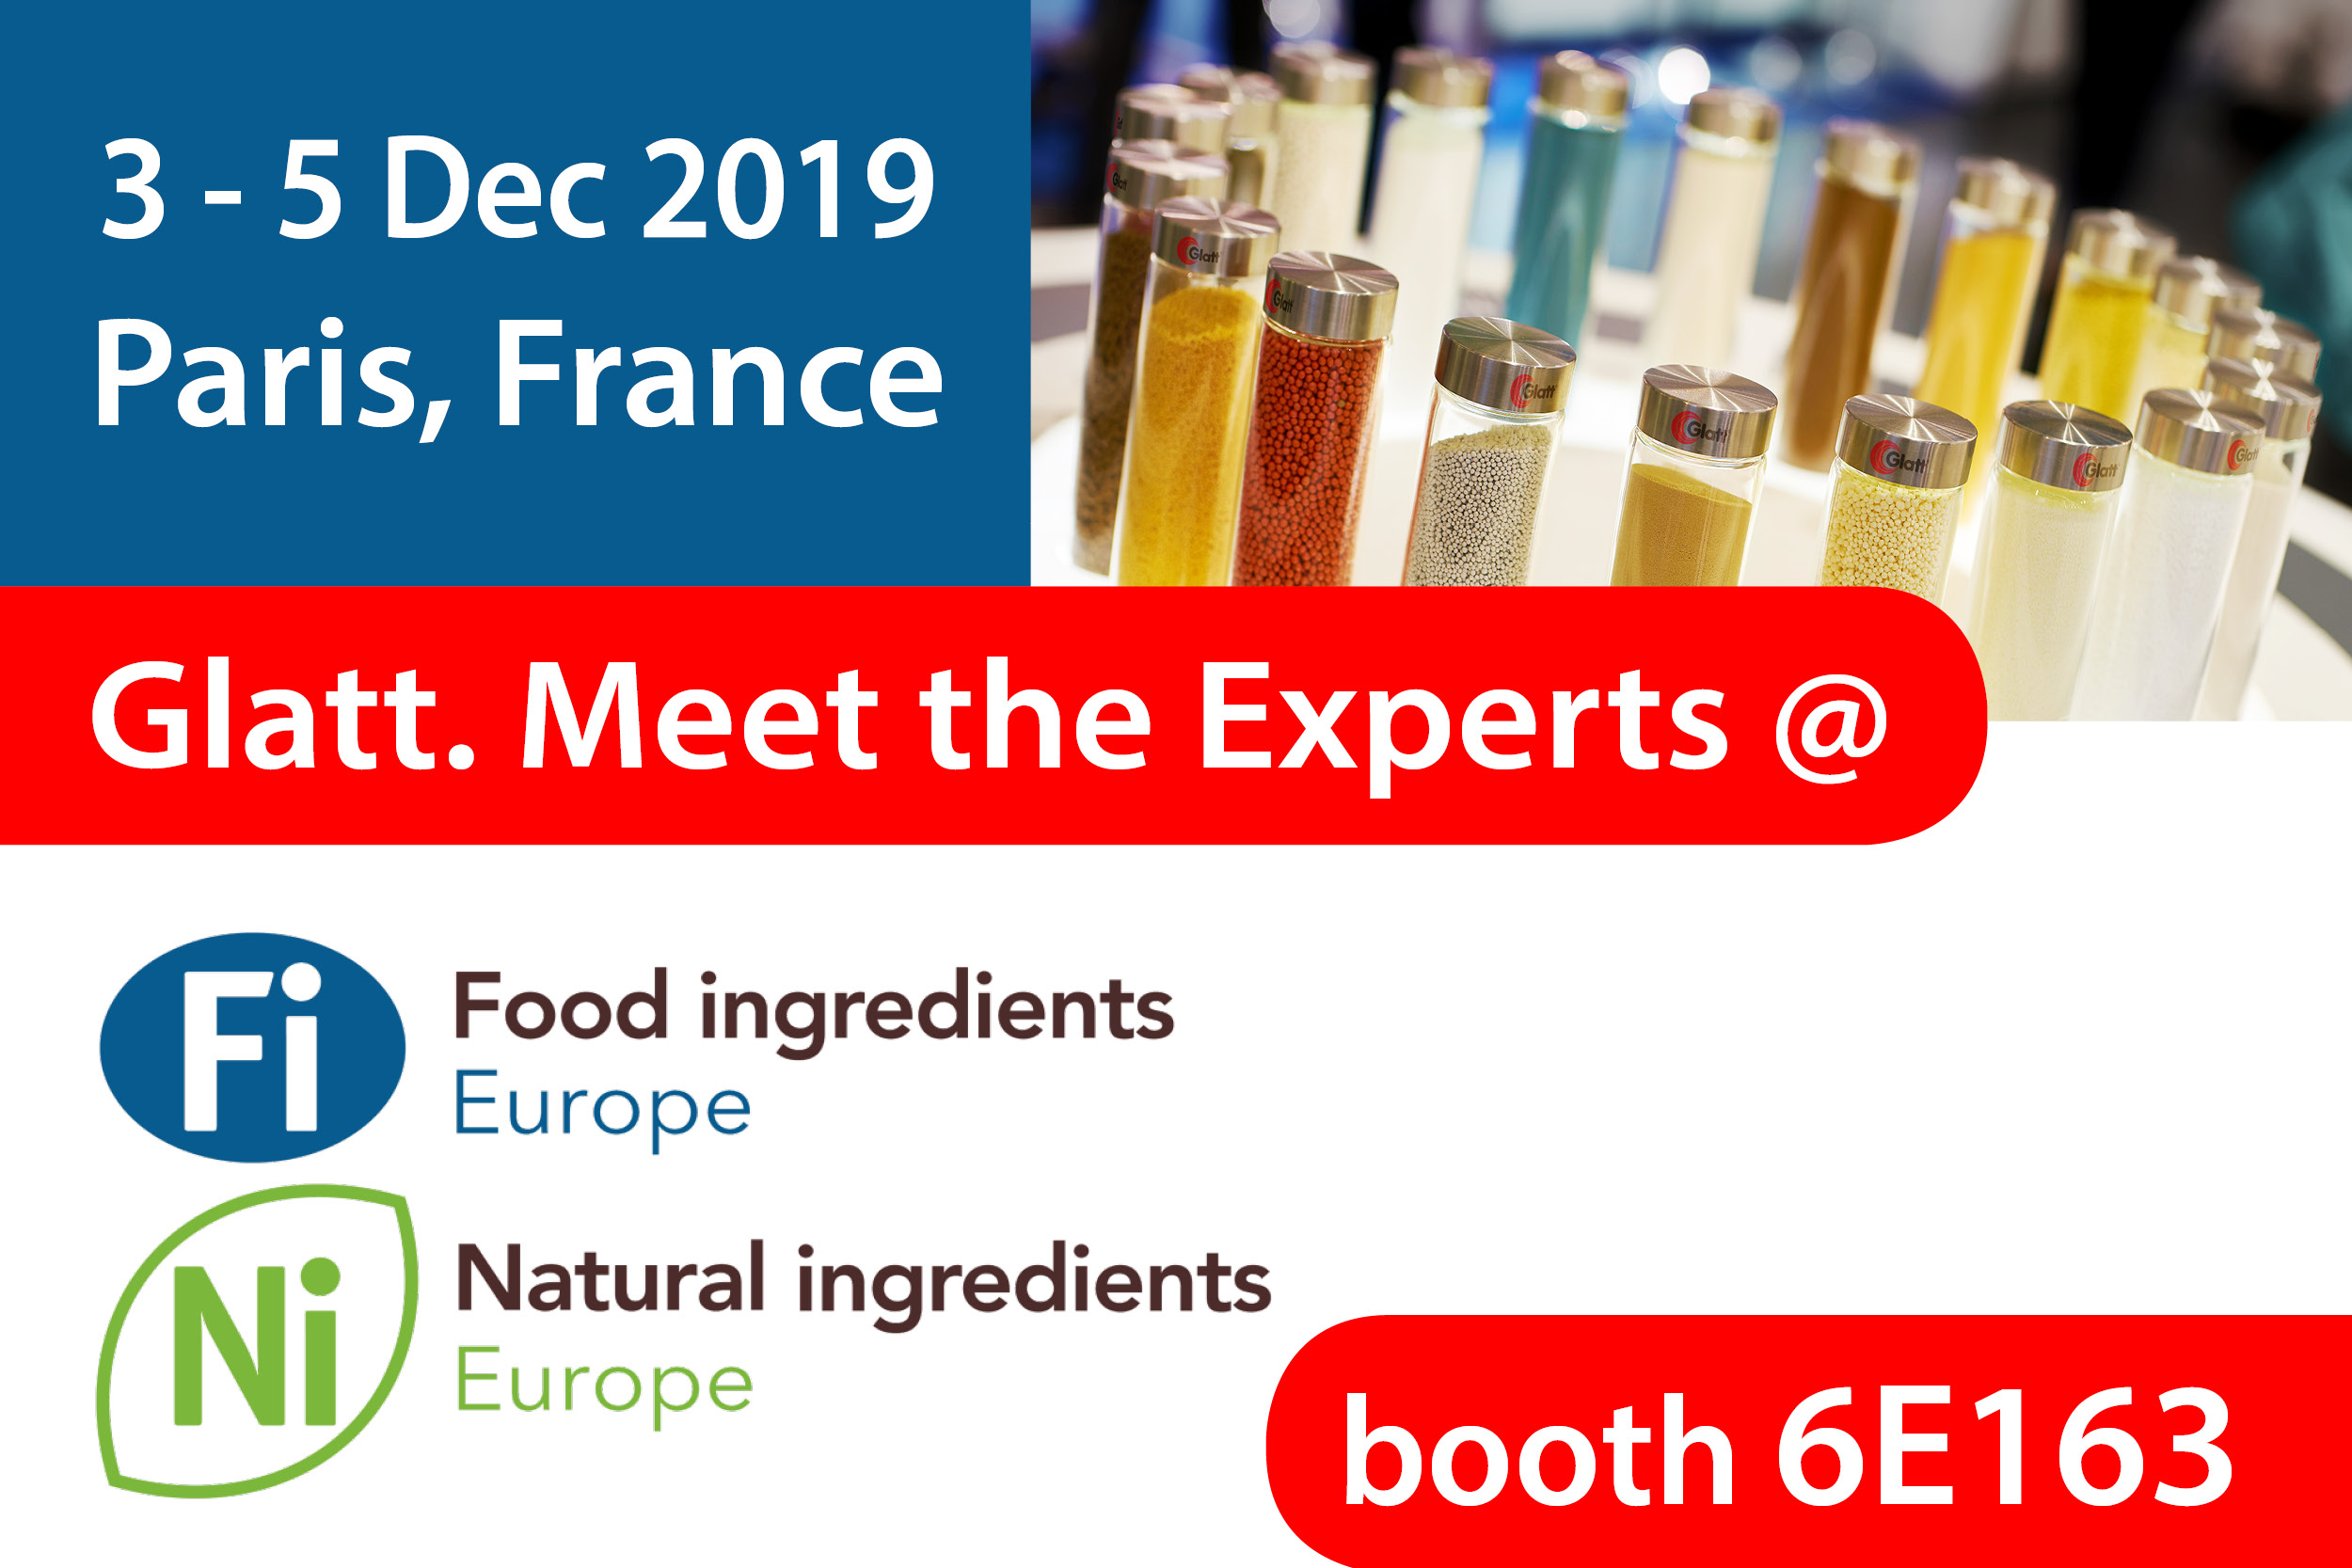 Glatt. Meet the Experts @ booth 6E163, Fi Food Ingredients Europe, 3-5 Dec 2019 in Paris, France